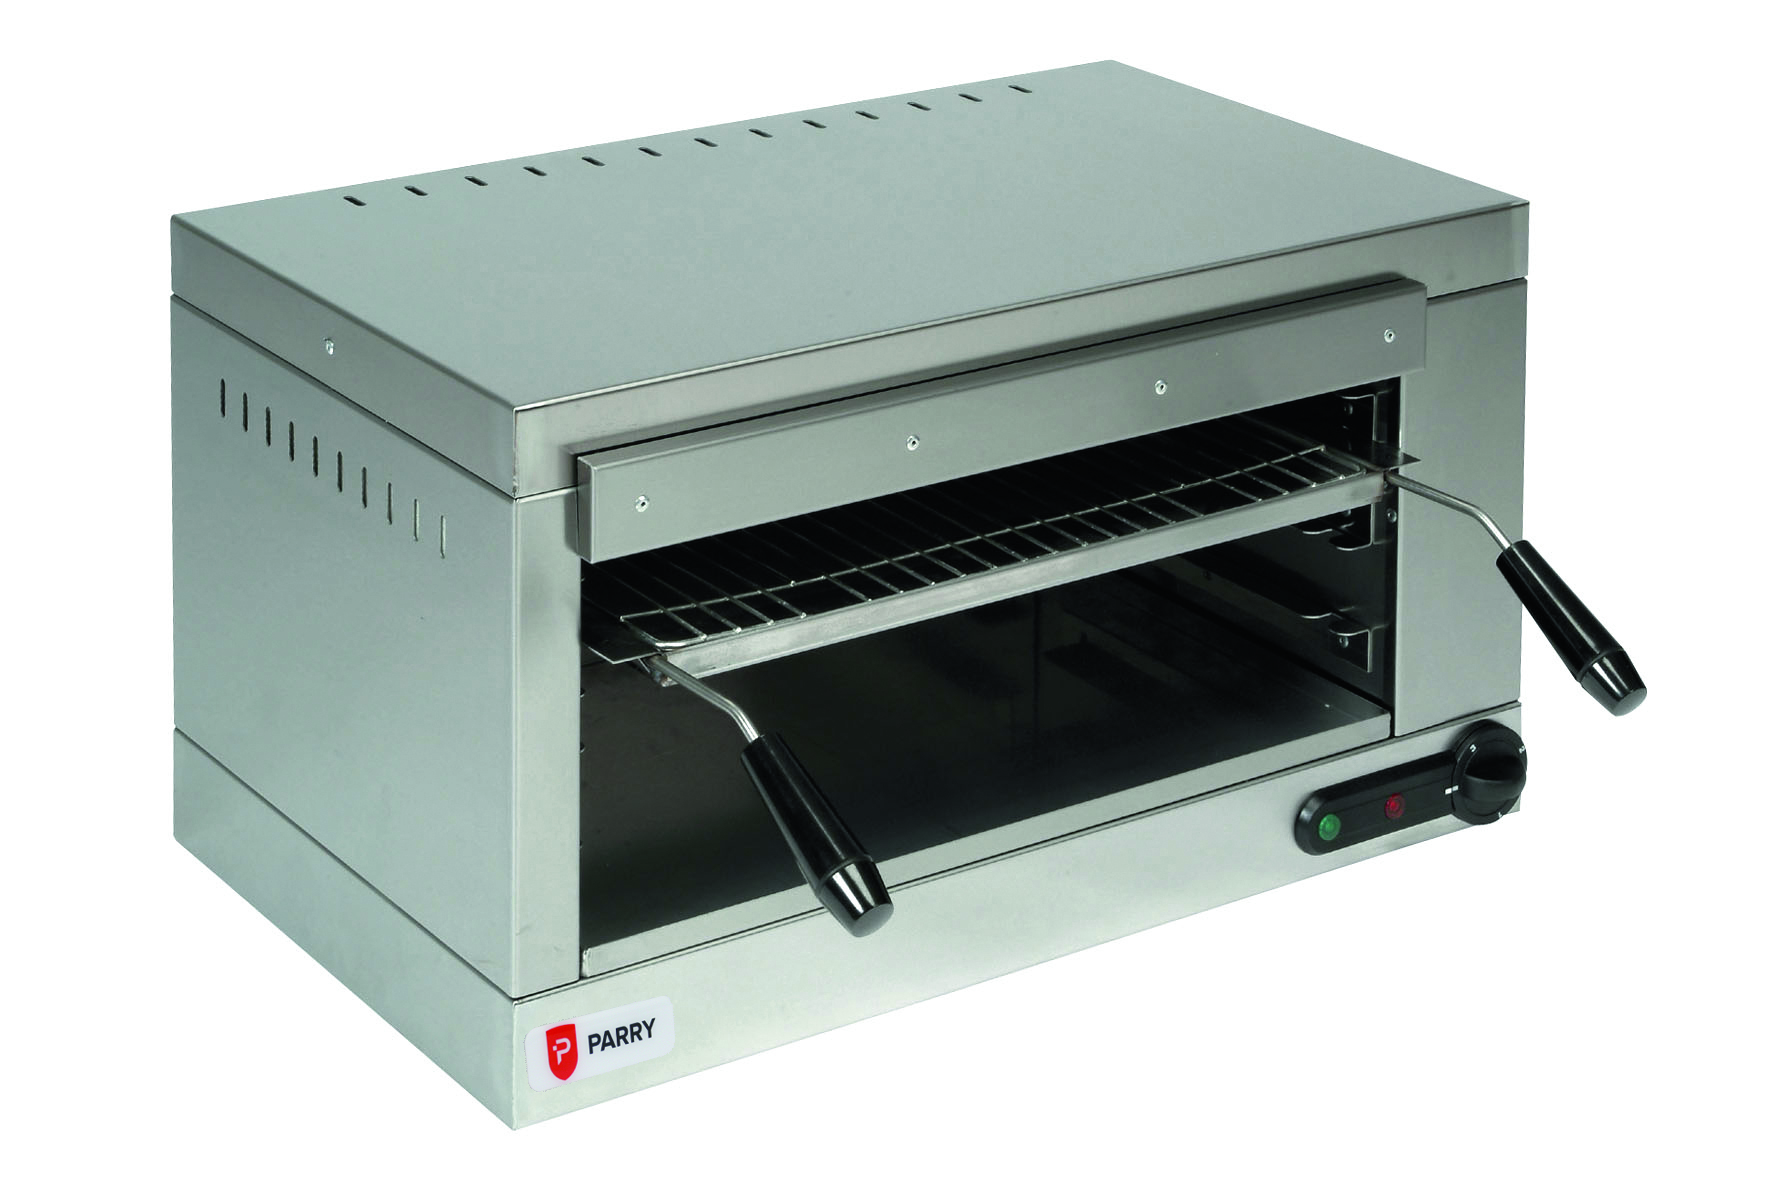 Parry Electric Wall Grill Salamander Grill 2.5kW - 1872 - Parry